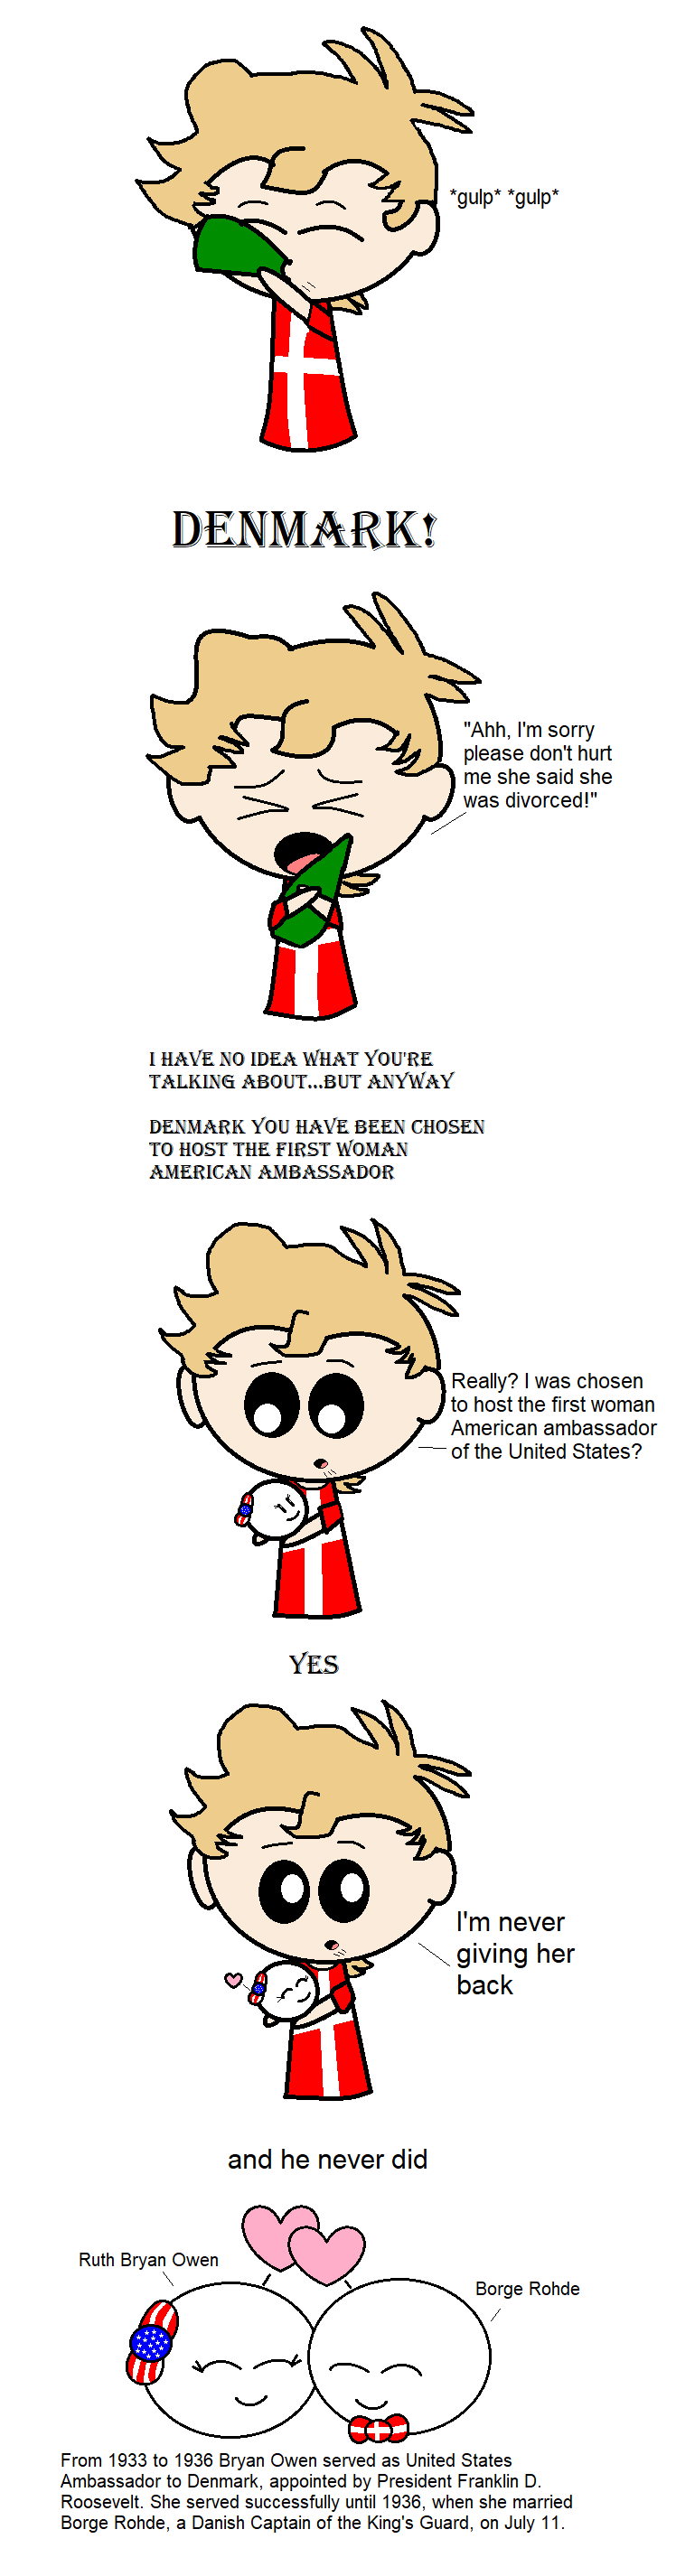 And Denmark never gave her back satwcomic.com